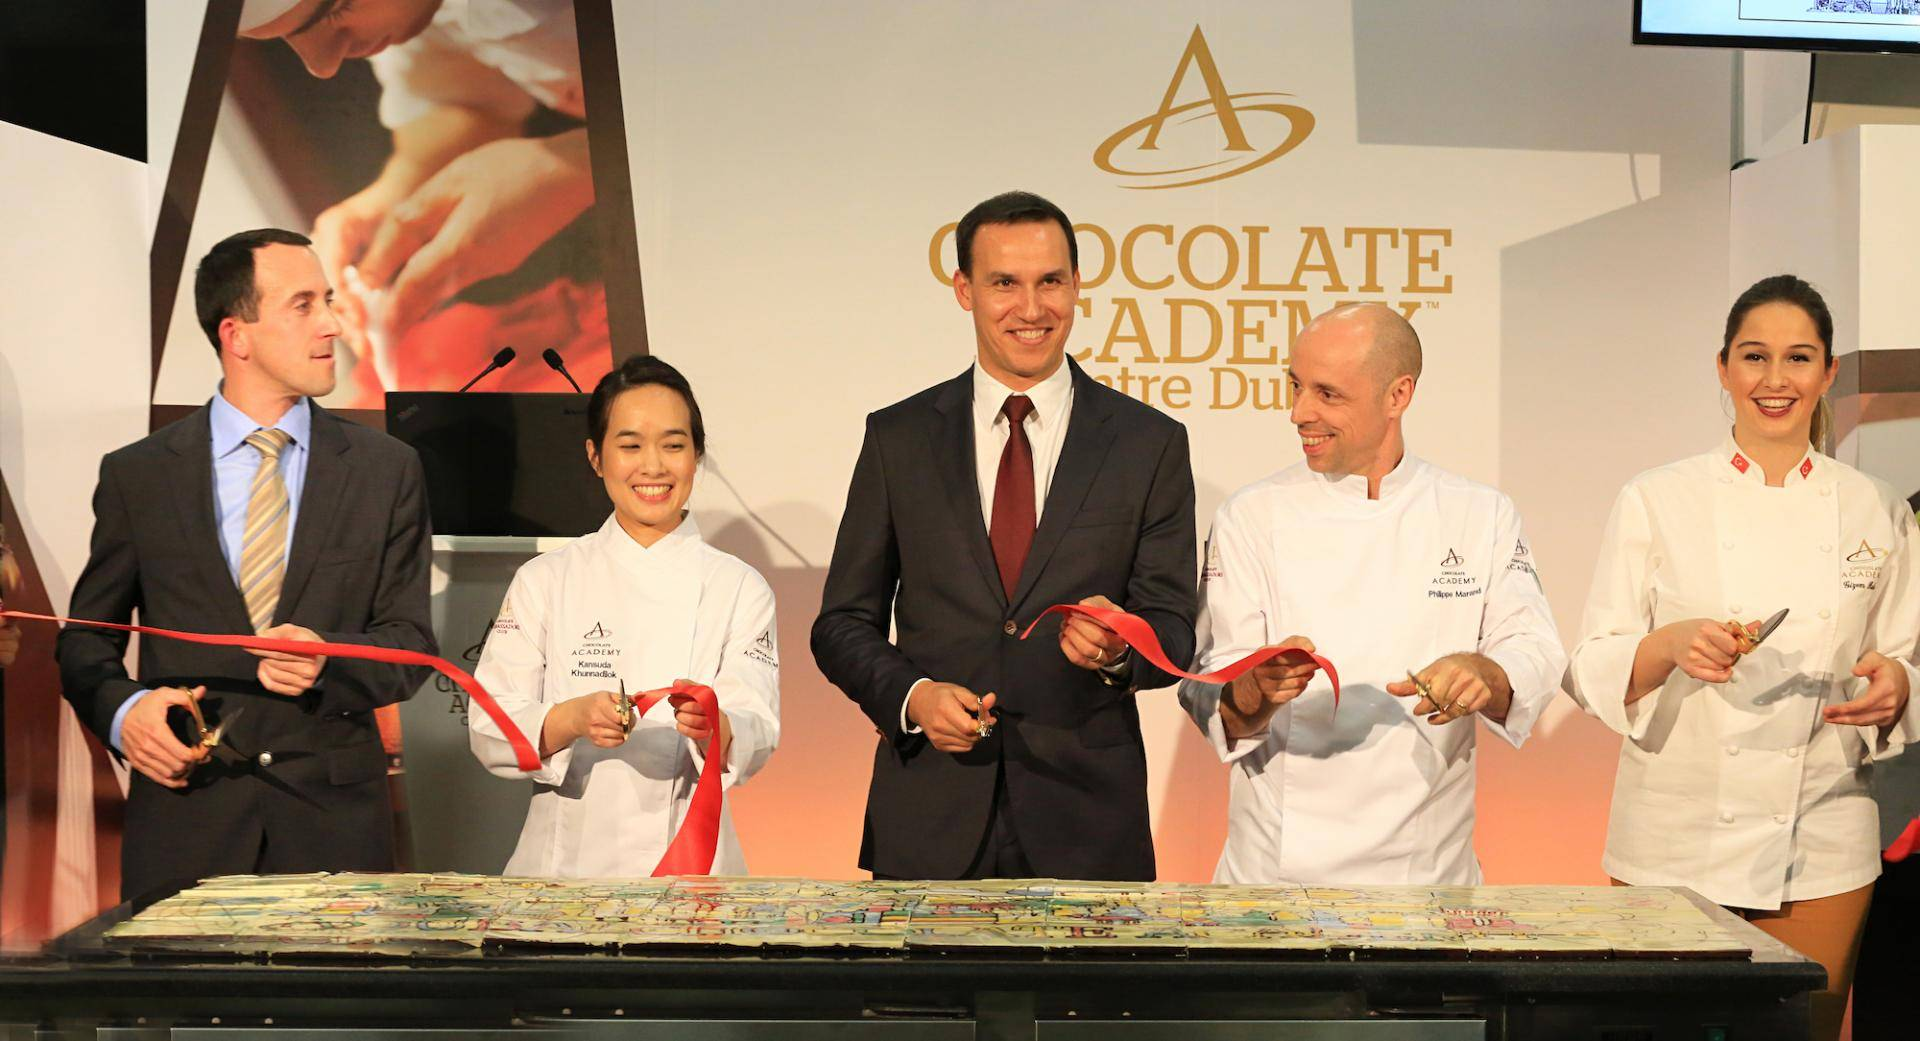 Barry Callebaut inaugurates new CHOCOLATE ACADEMY™ center in the Middle East